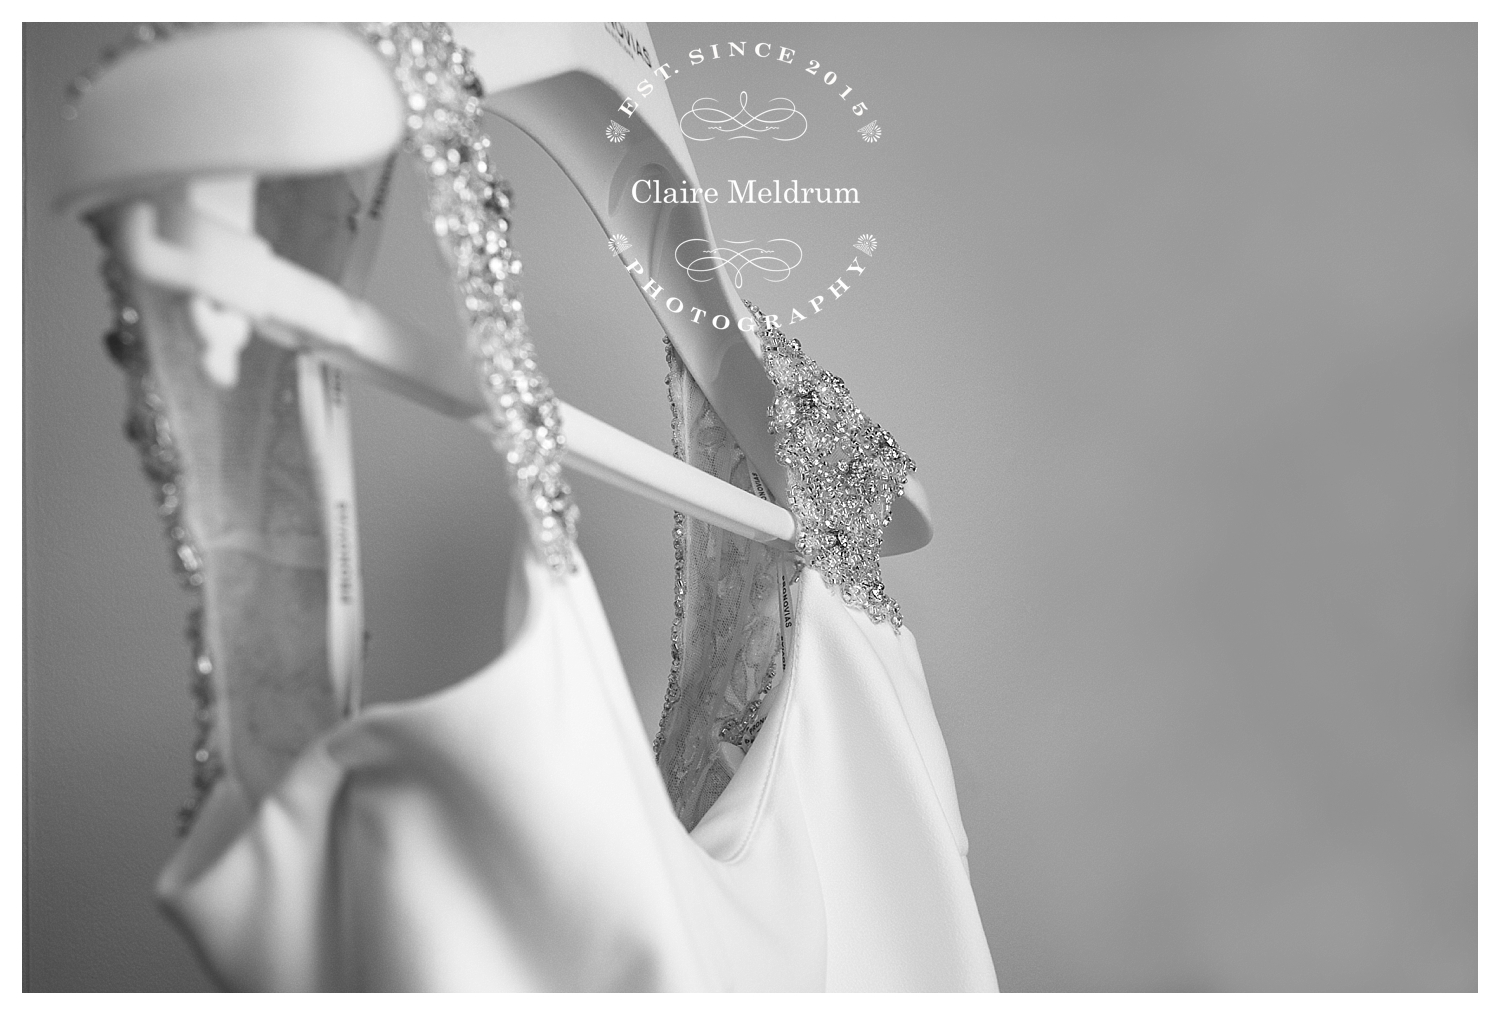 Pronovias wedding dress - Claire Meldrum Photography Staffordshire